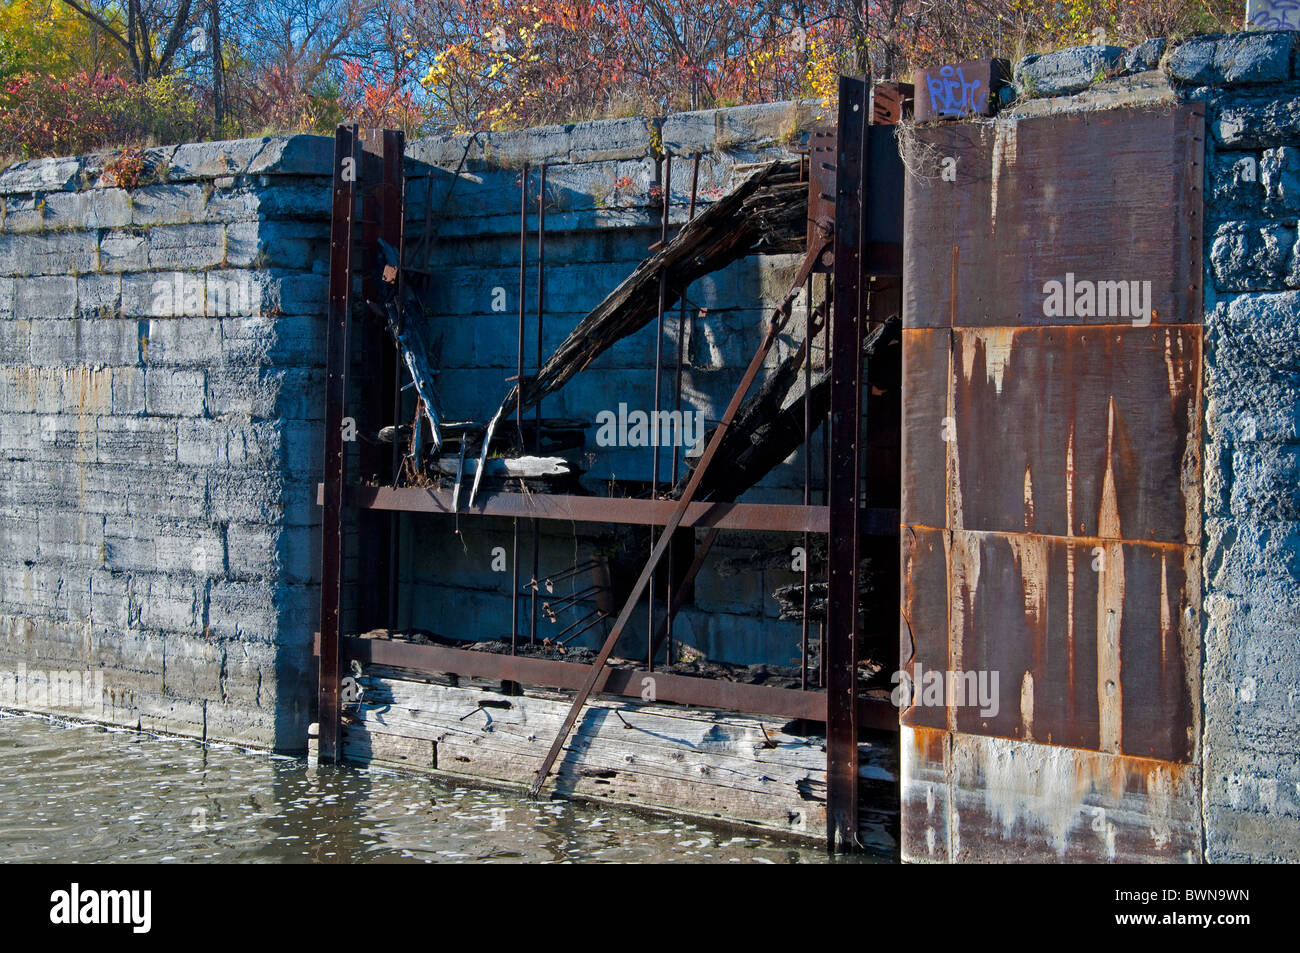 A deteriorating gate on the Soulange Canal. - Stock Image